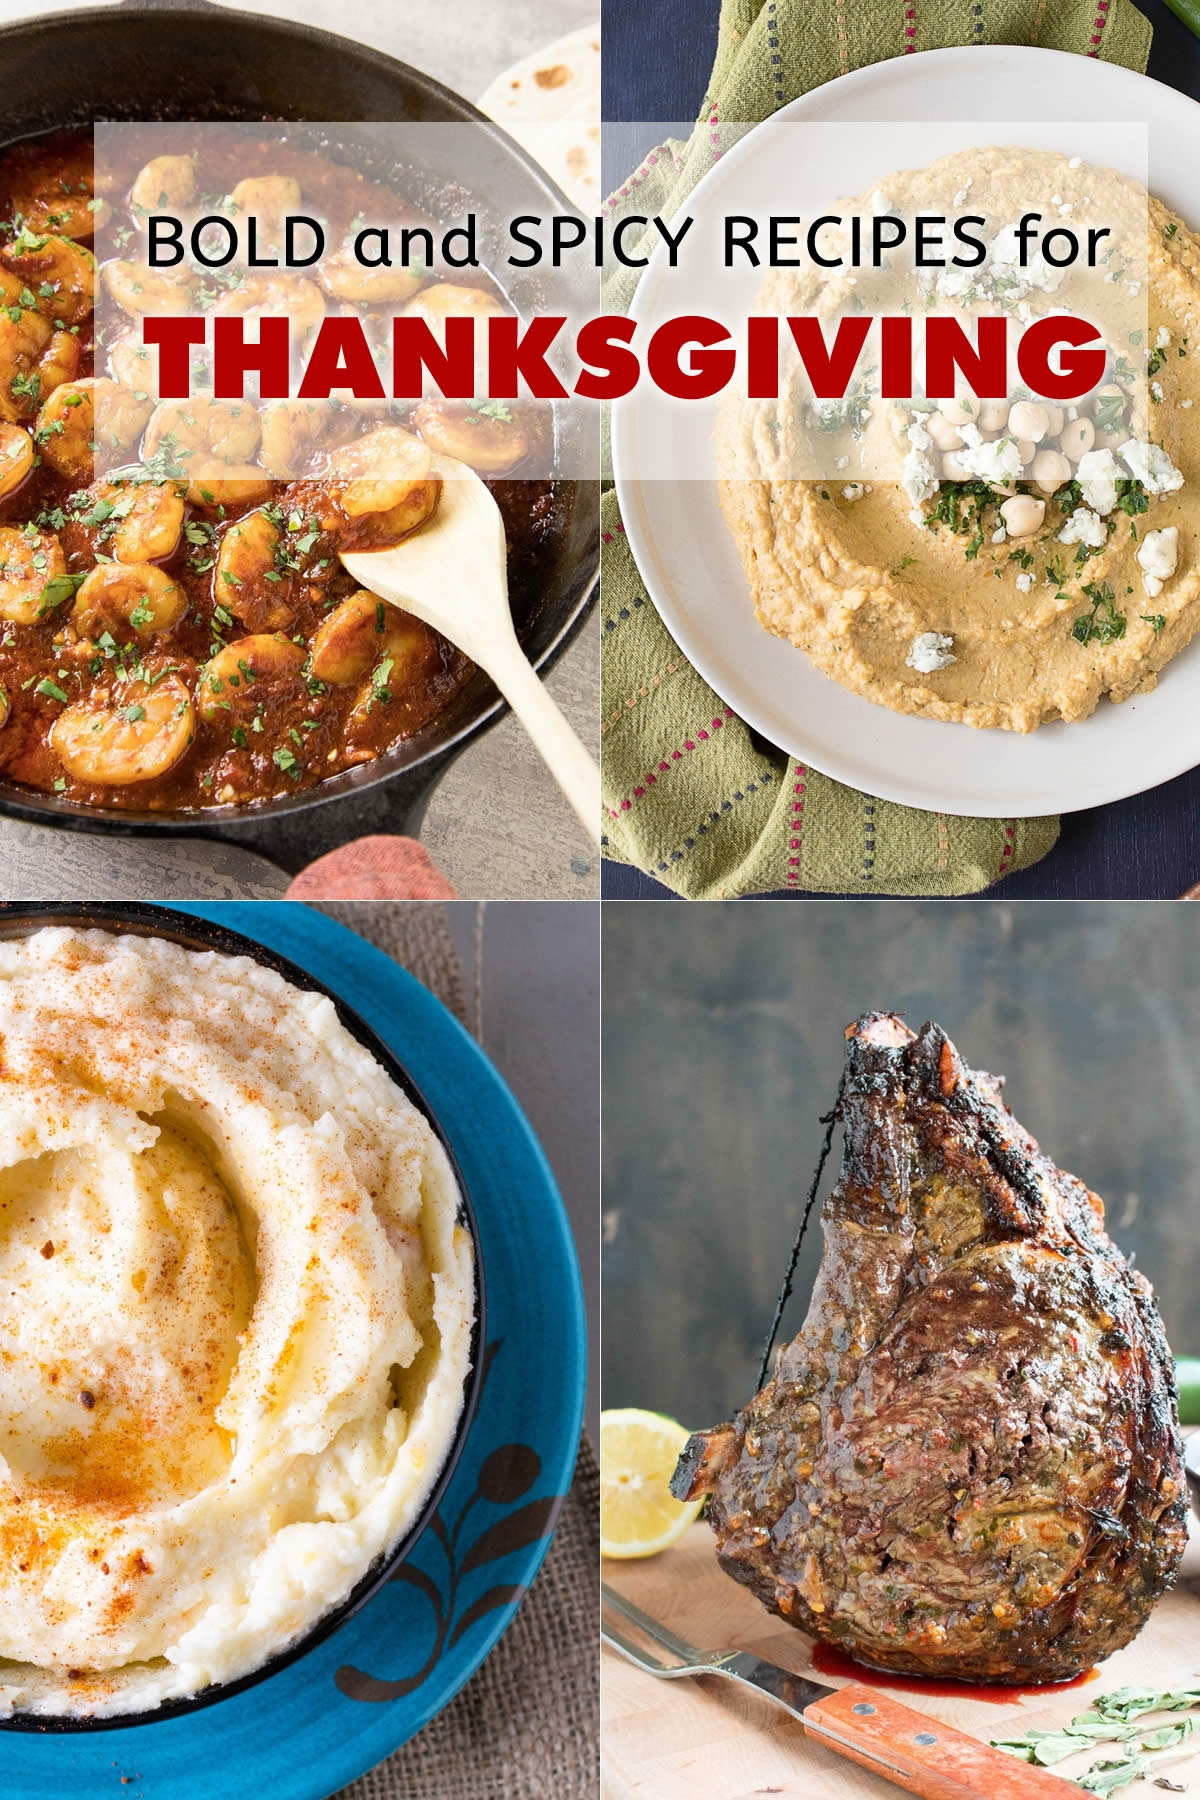 Bold and Spicy Recipes for Thanksgiving